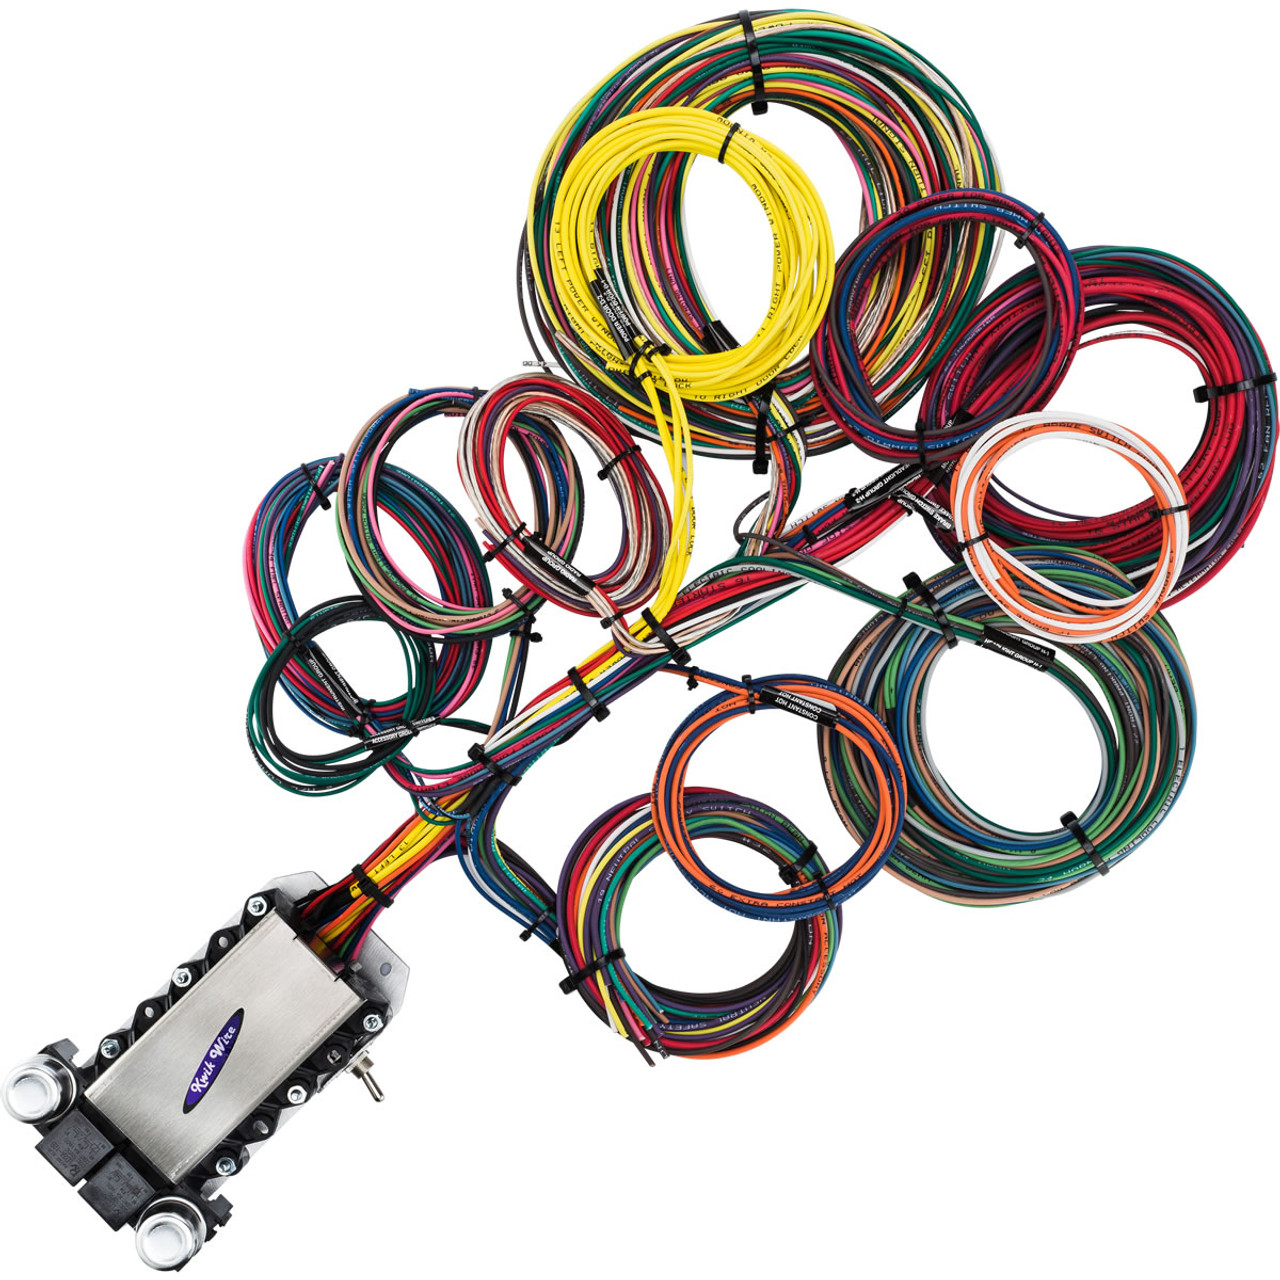 20 Circuit Wiring Harness Kit Diagram Wire Center Instructions U2022 Rh Spaculus Co Toyota Camper